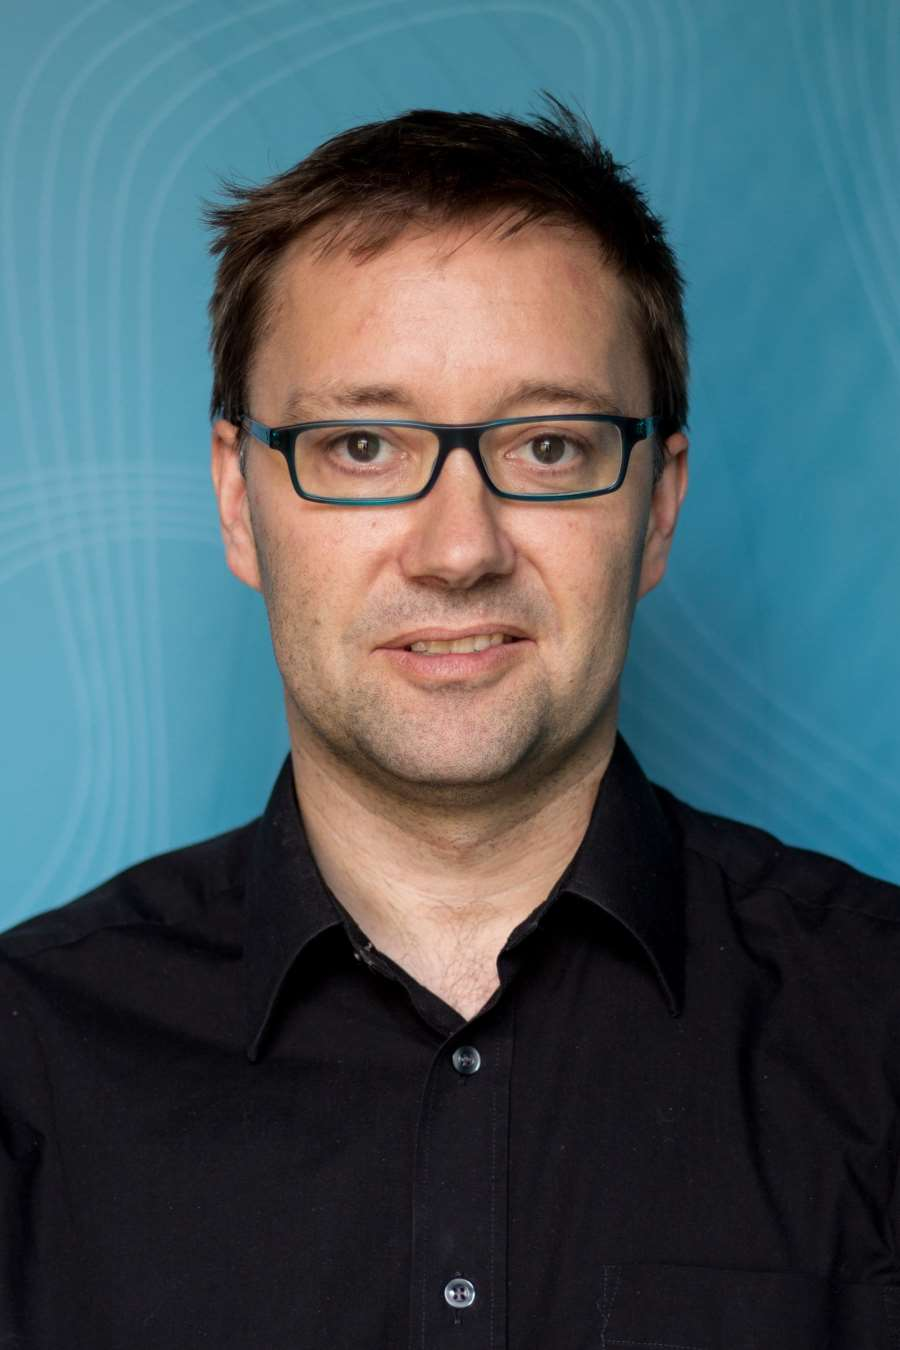 Kristian Skrede Gleditsch Nominated to be President of the International Studies Association